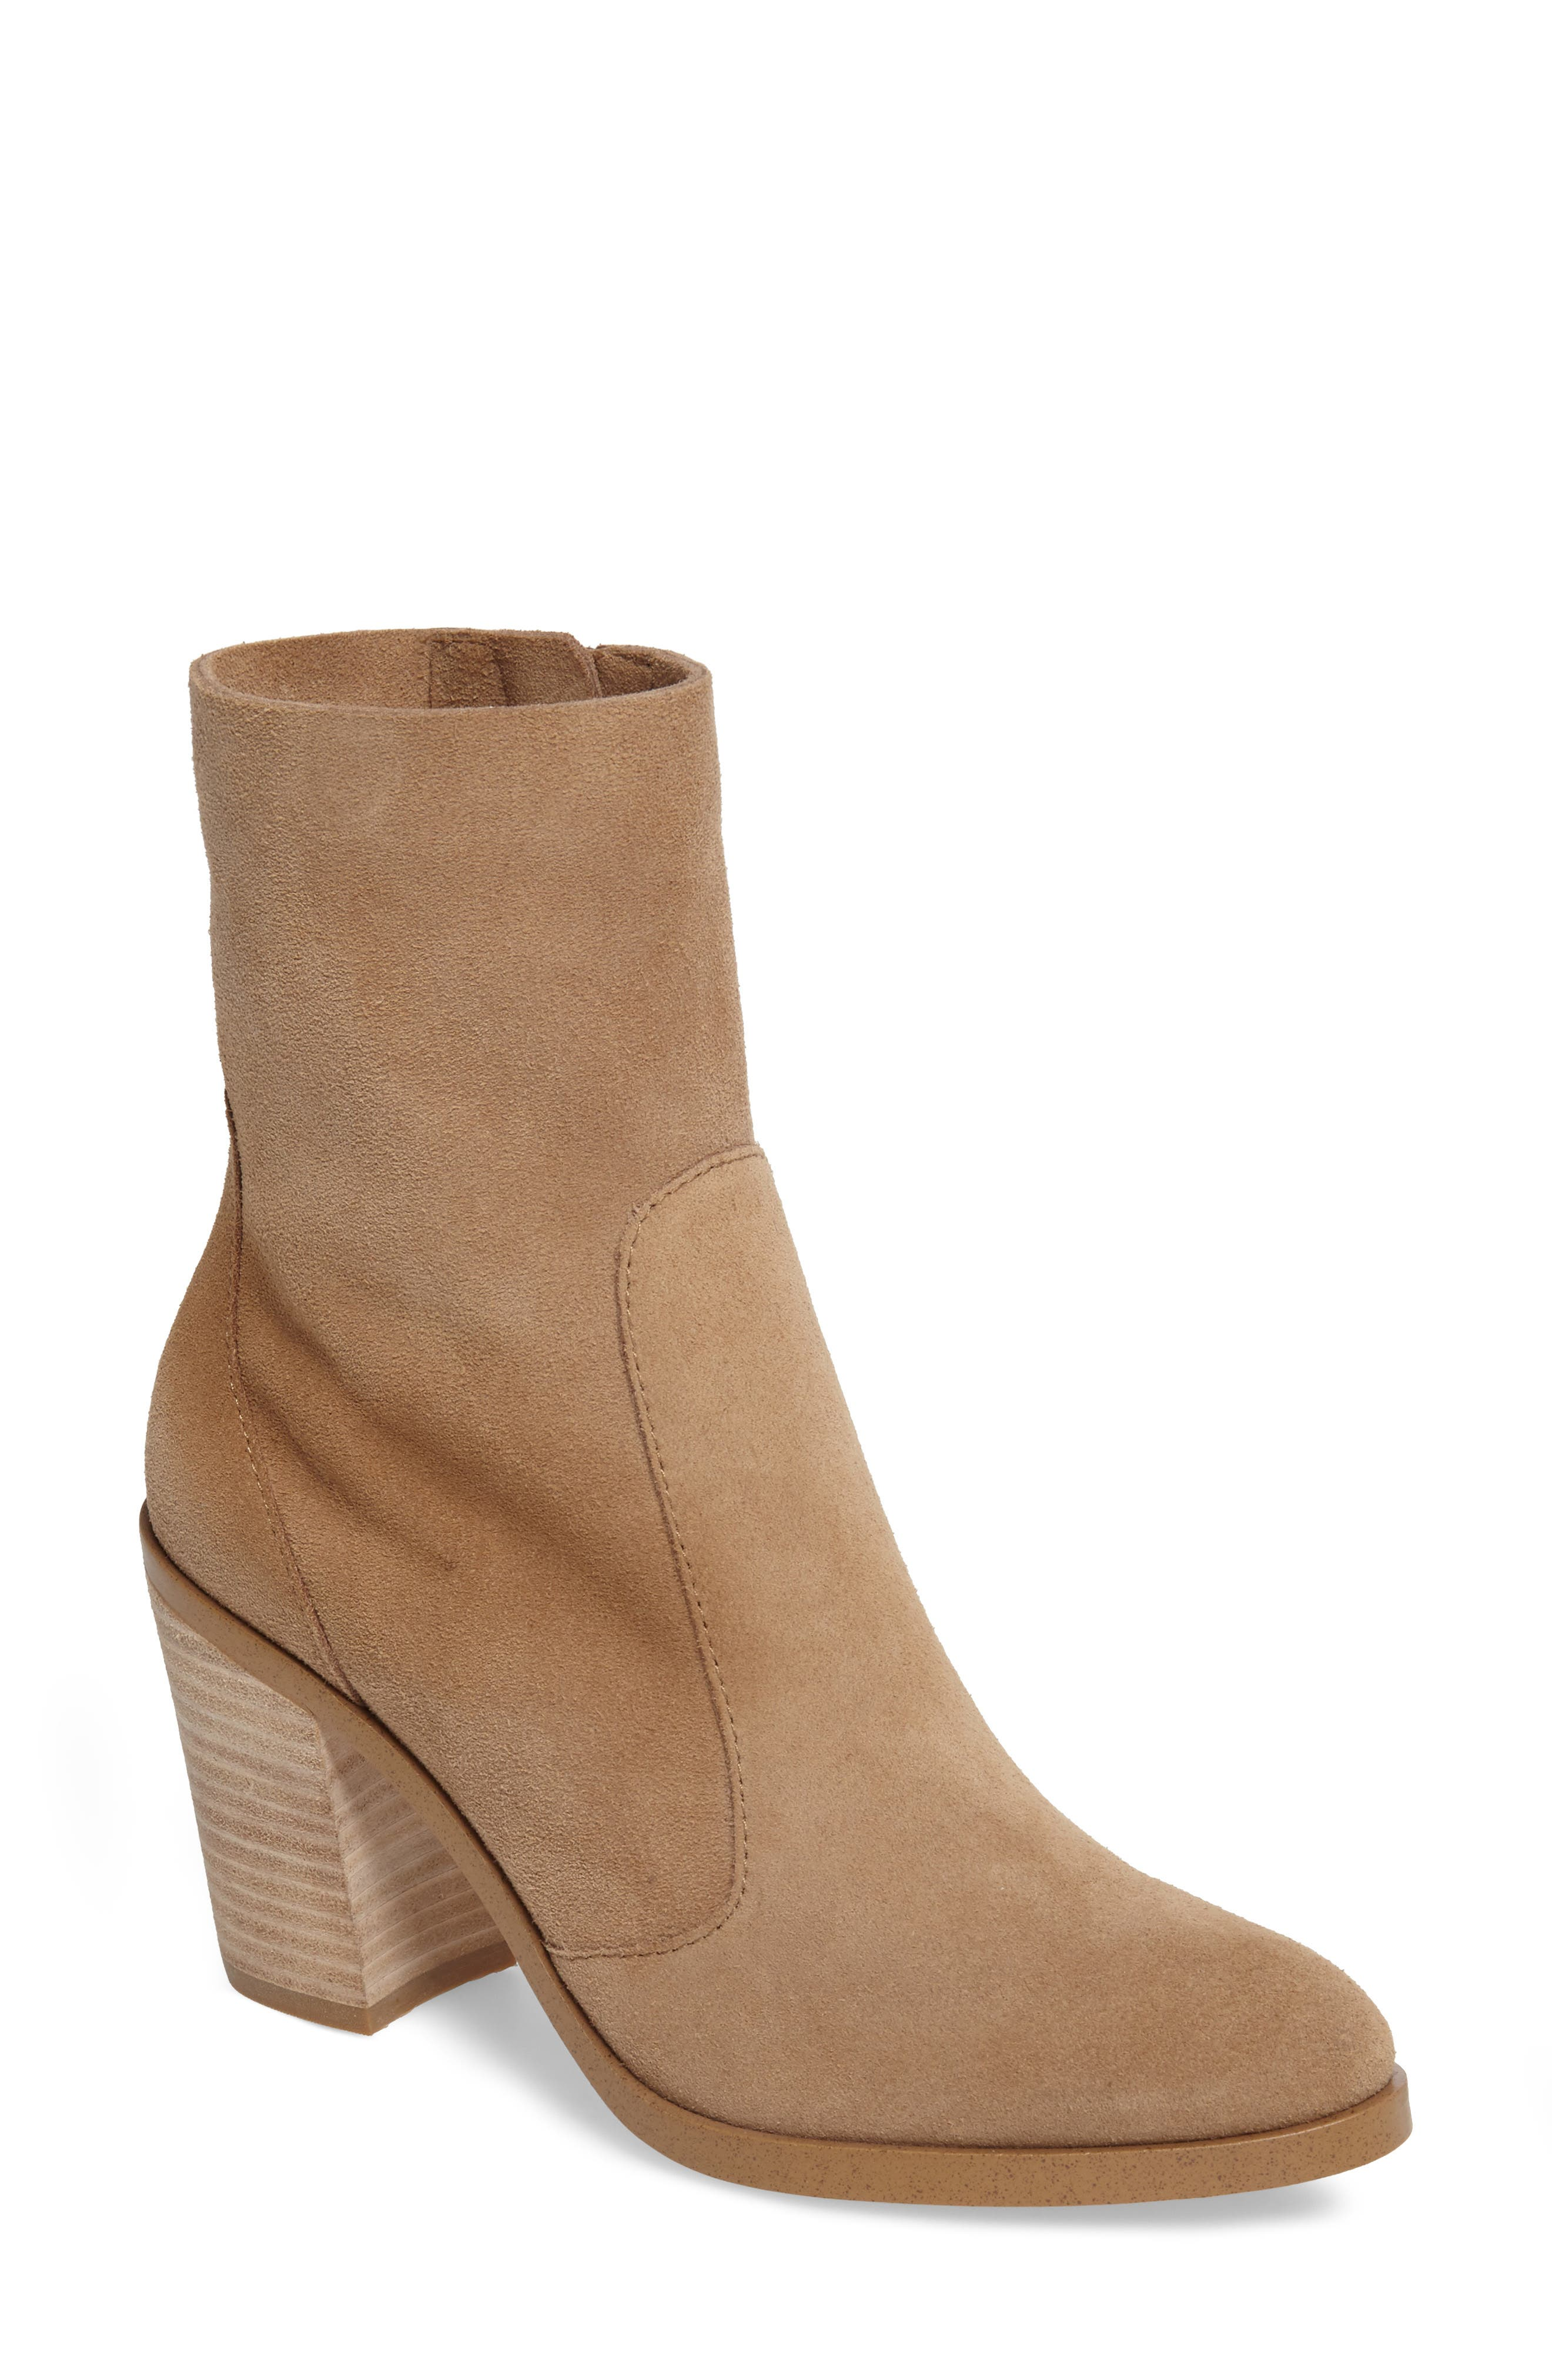 Splendid Roselyn II Almond Toe Bootie (Women)